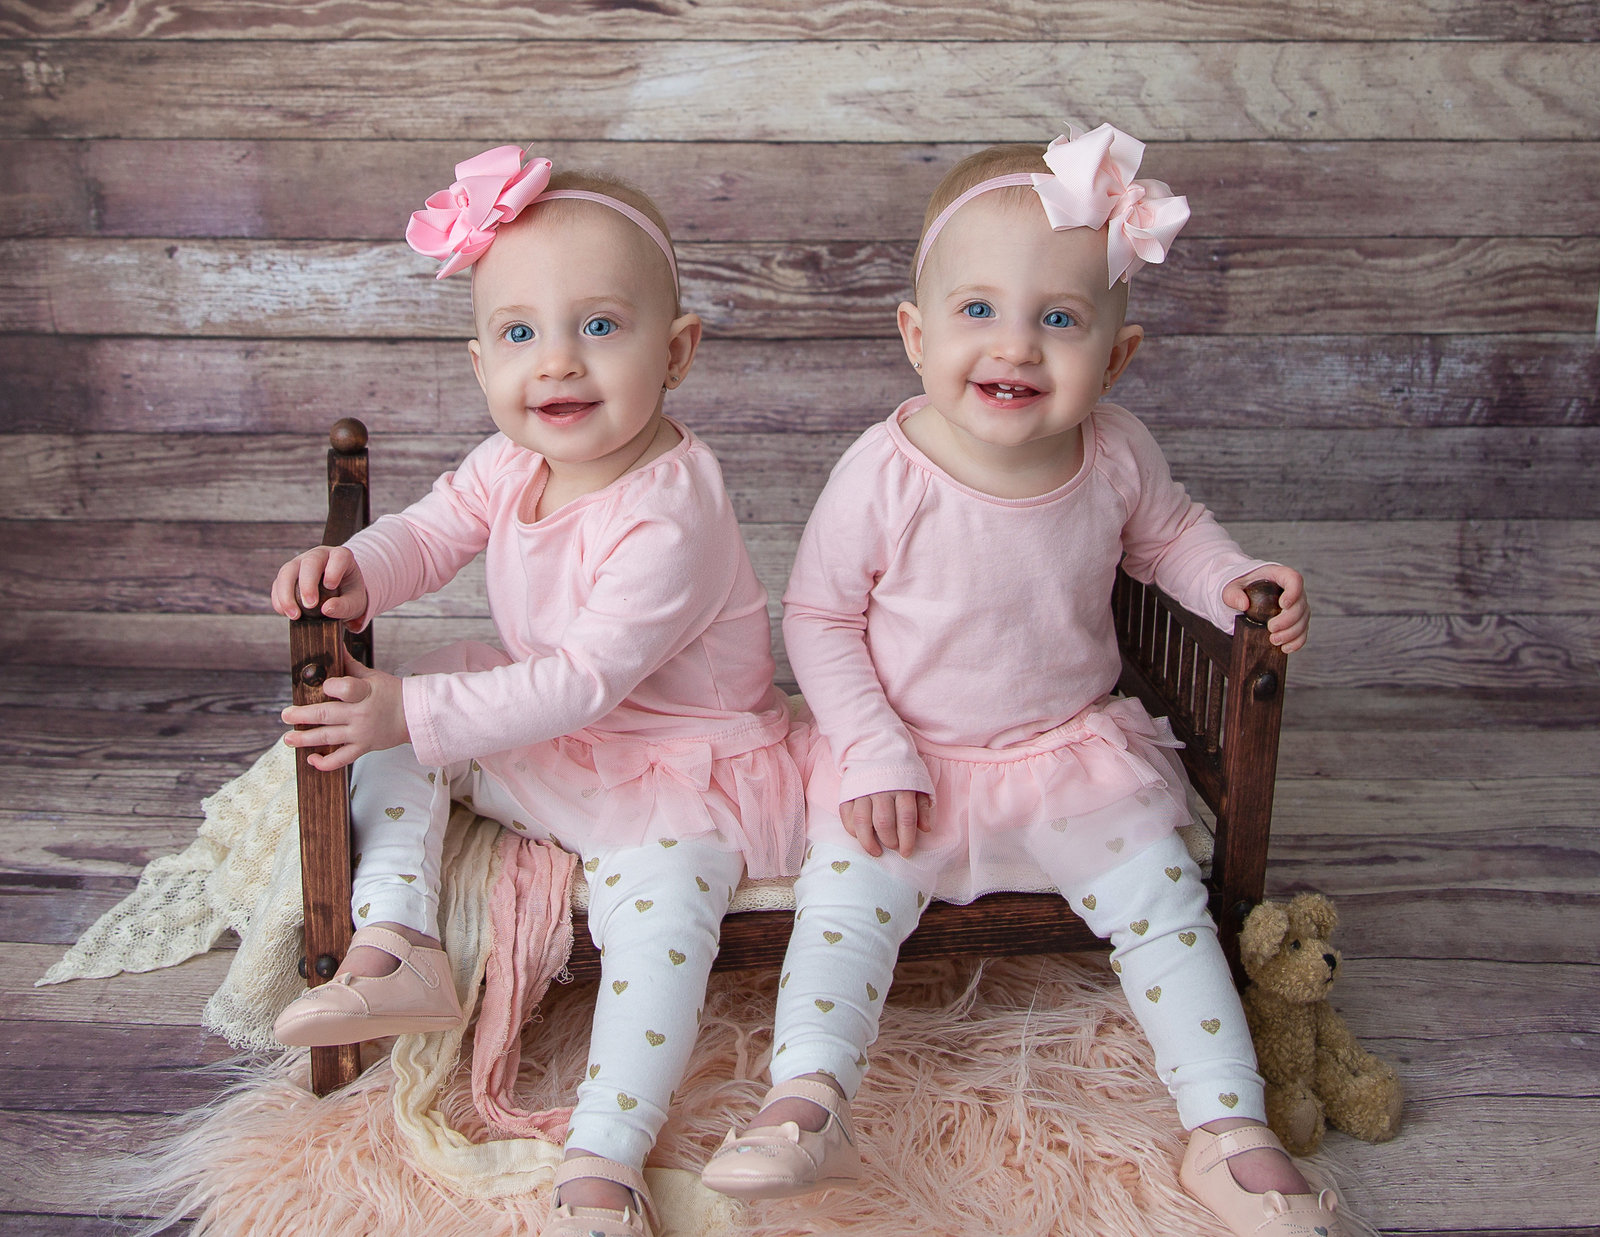 Twin smiling girls sitting on a wood bed together, pink flokati underneath, pink shirts and pink headbands